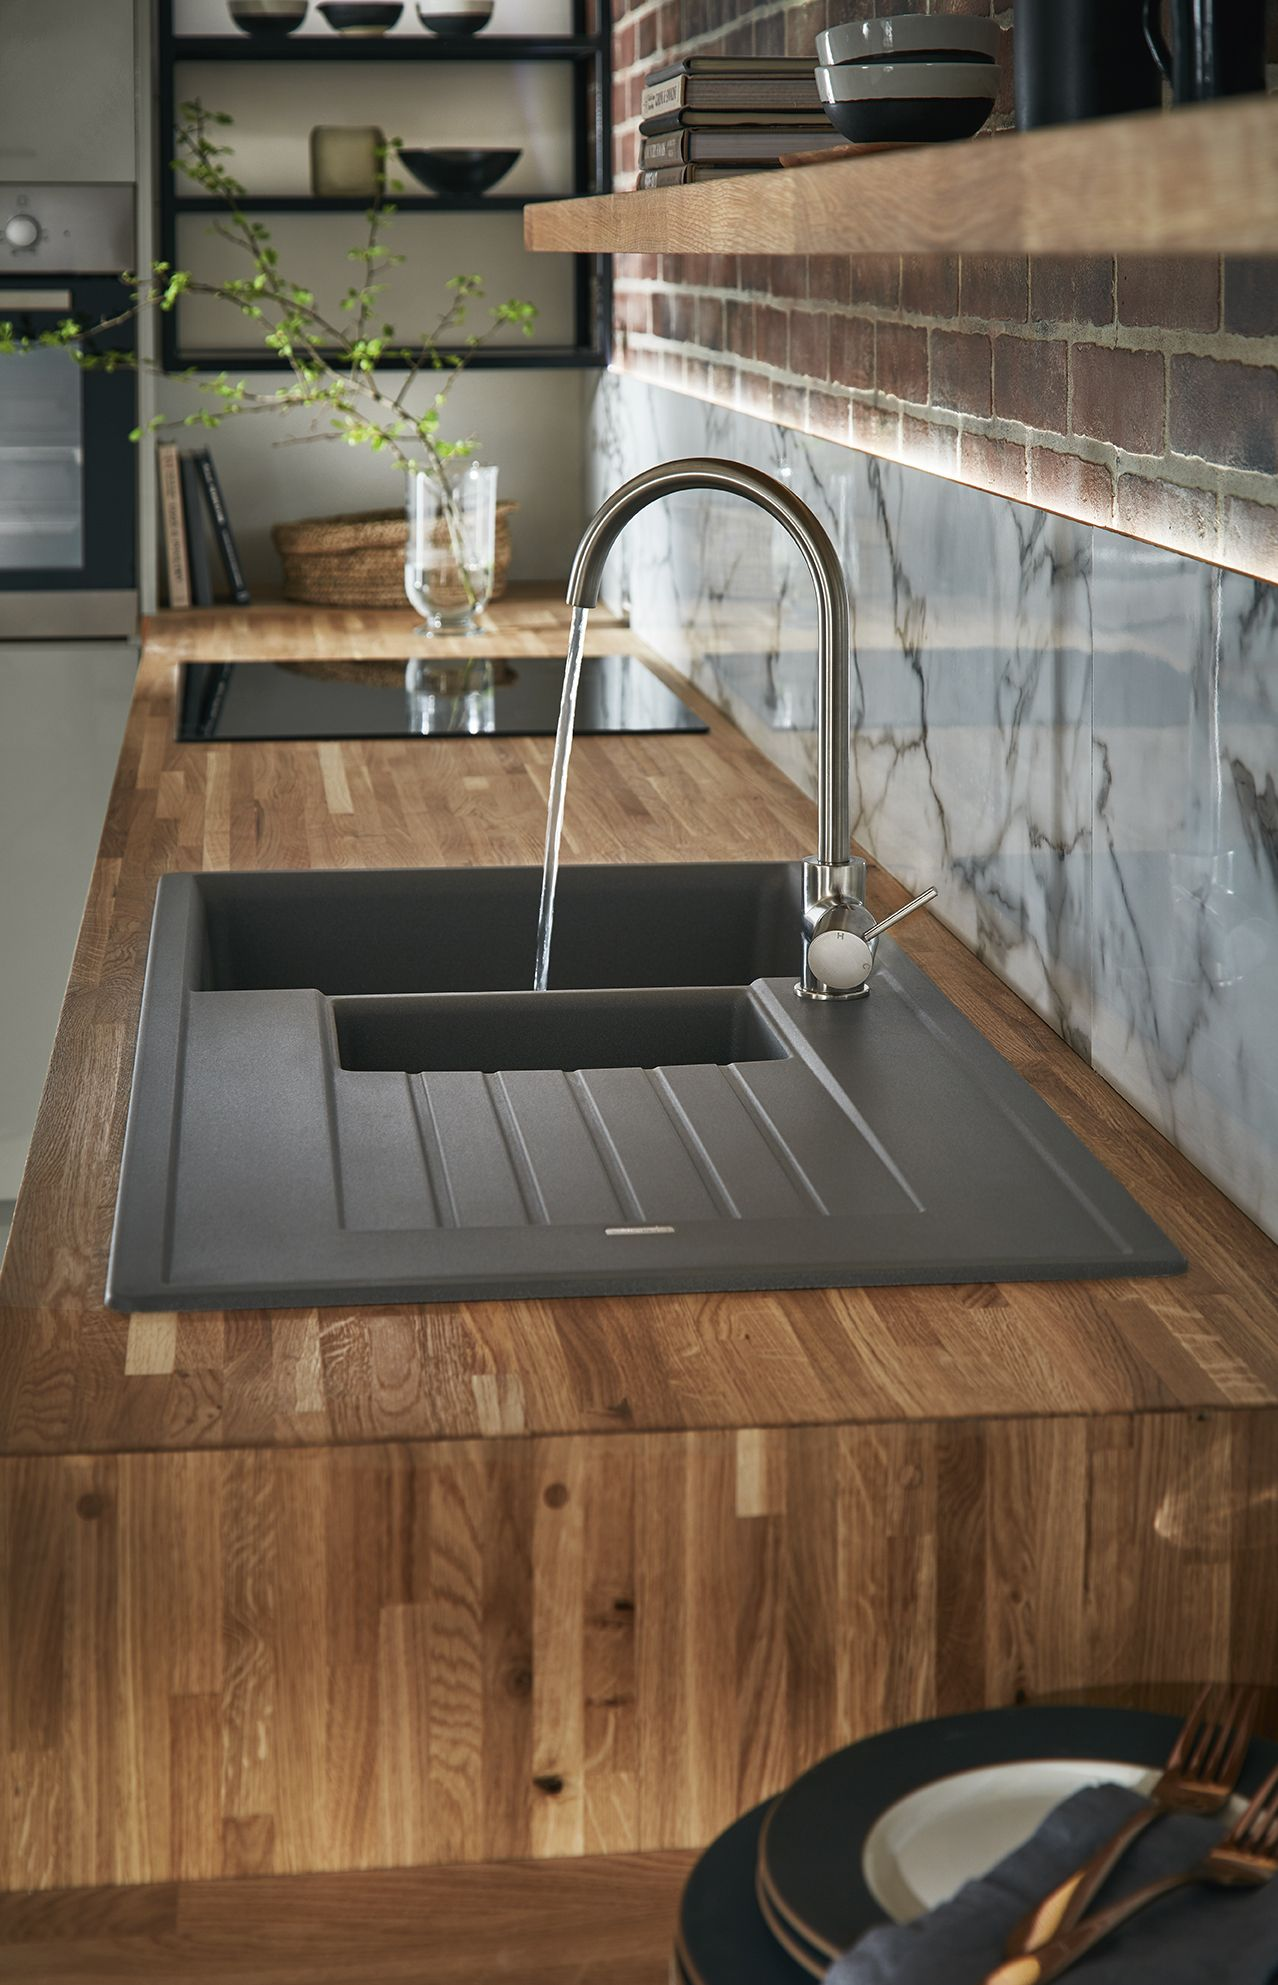 Kitchens | Ness Street...kitchen in 2019 | Kitchen sink ...